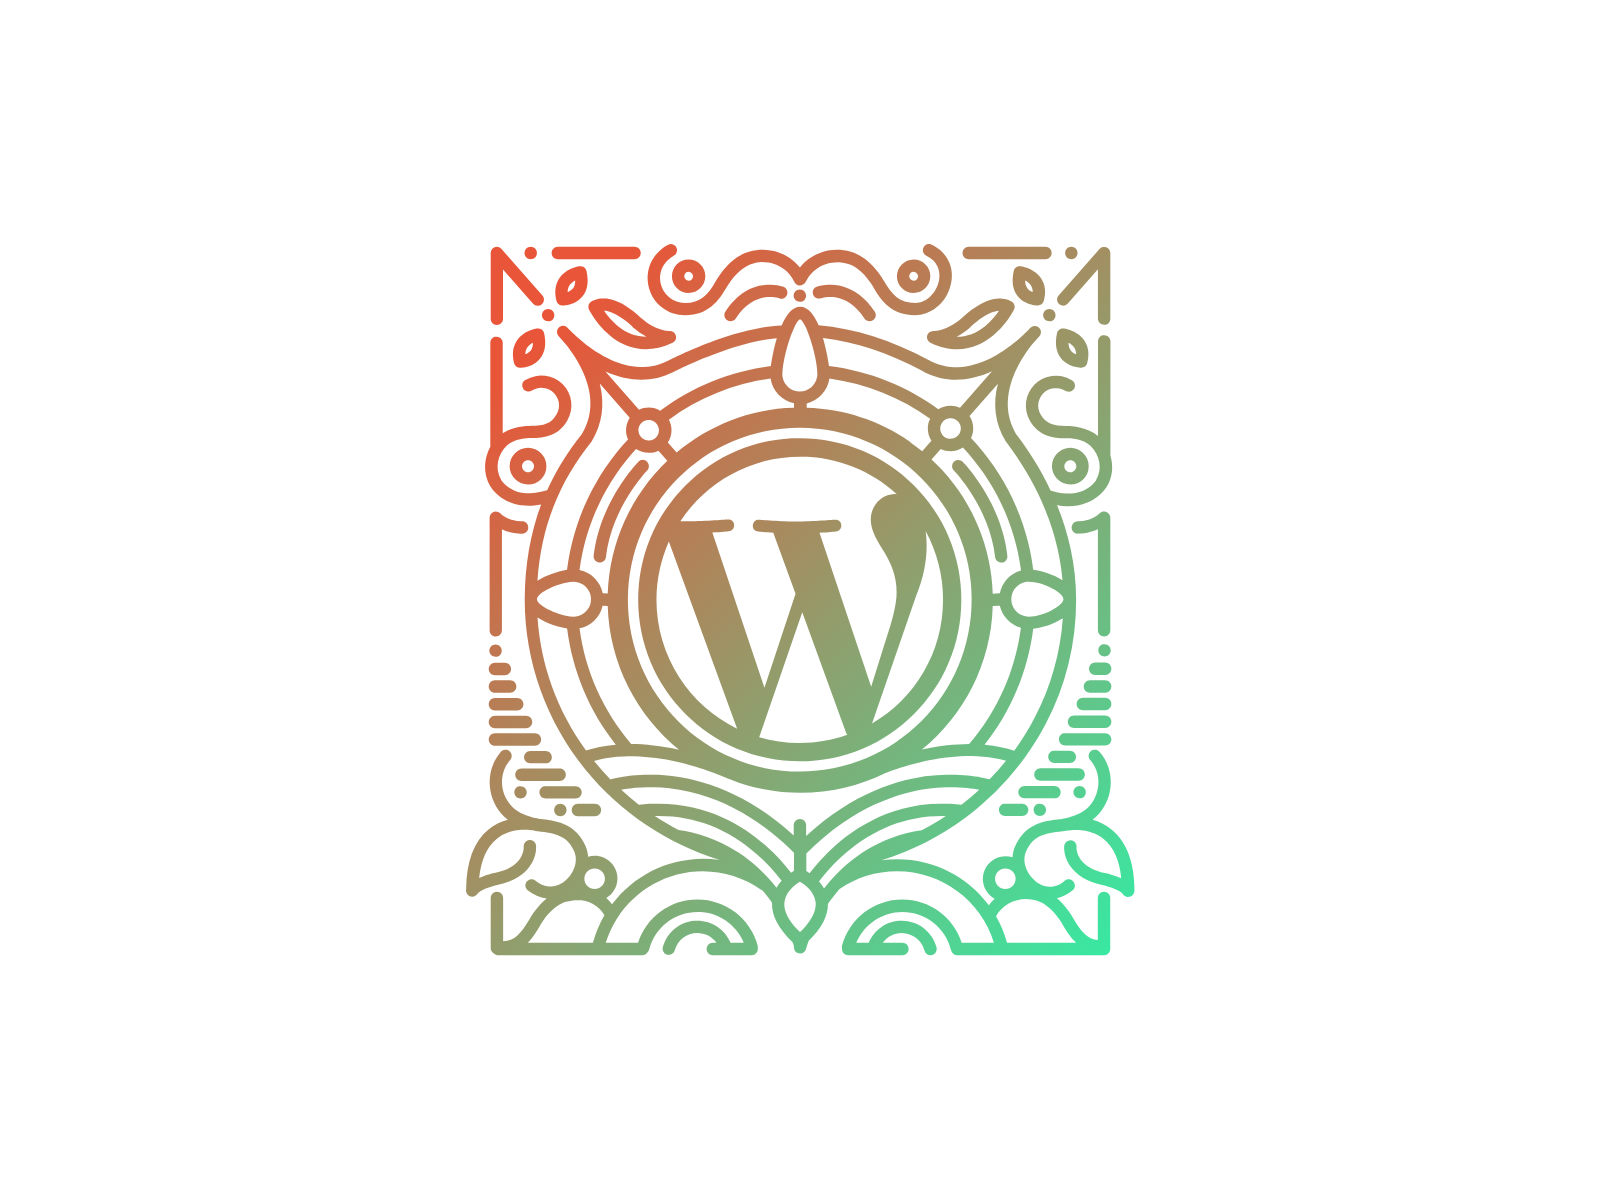 WordPress 5.0 | Kanuka Digital